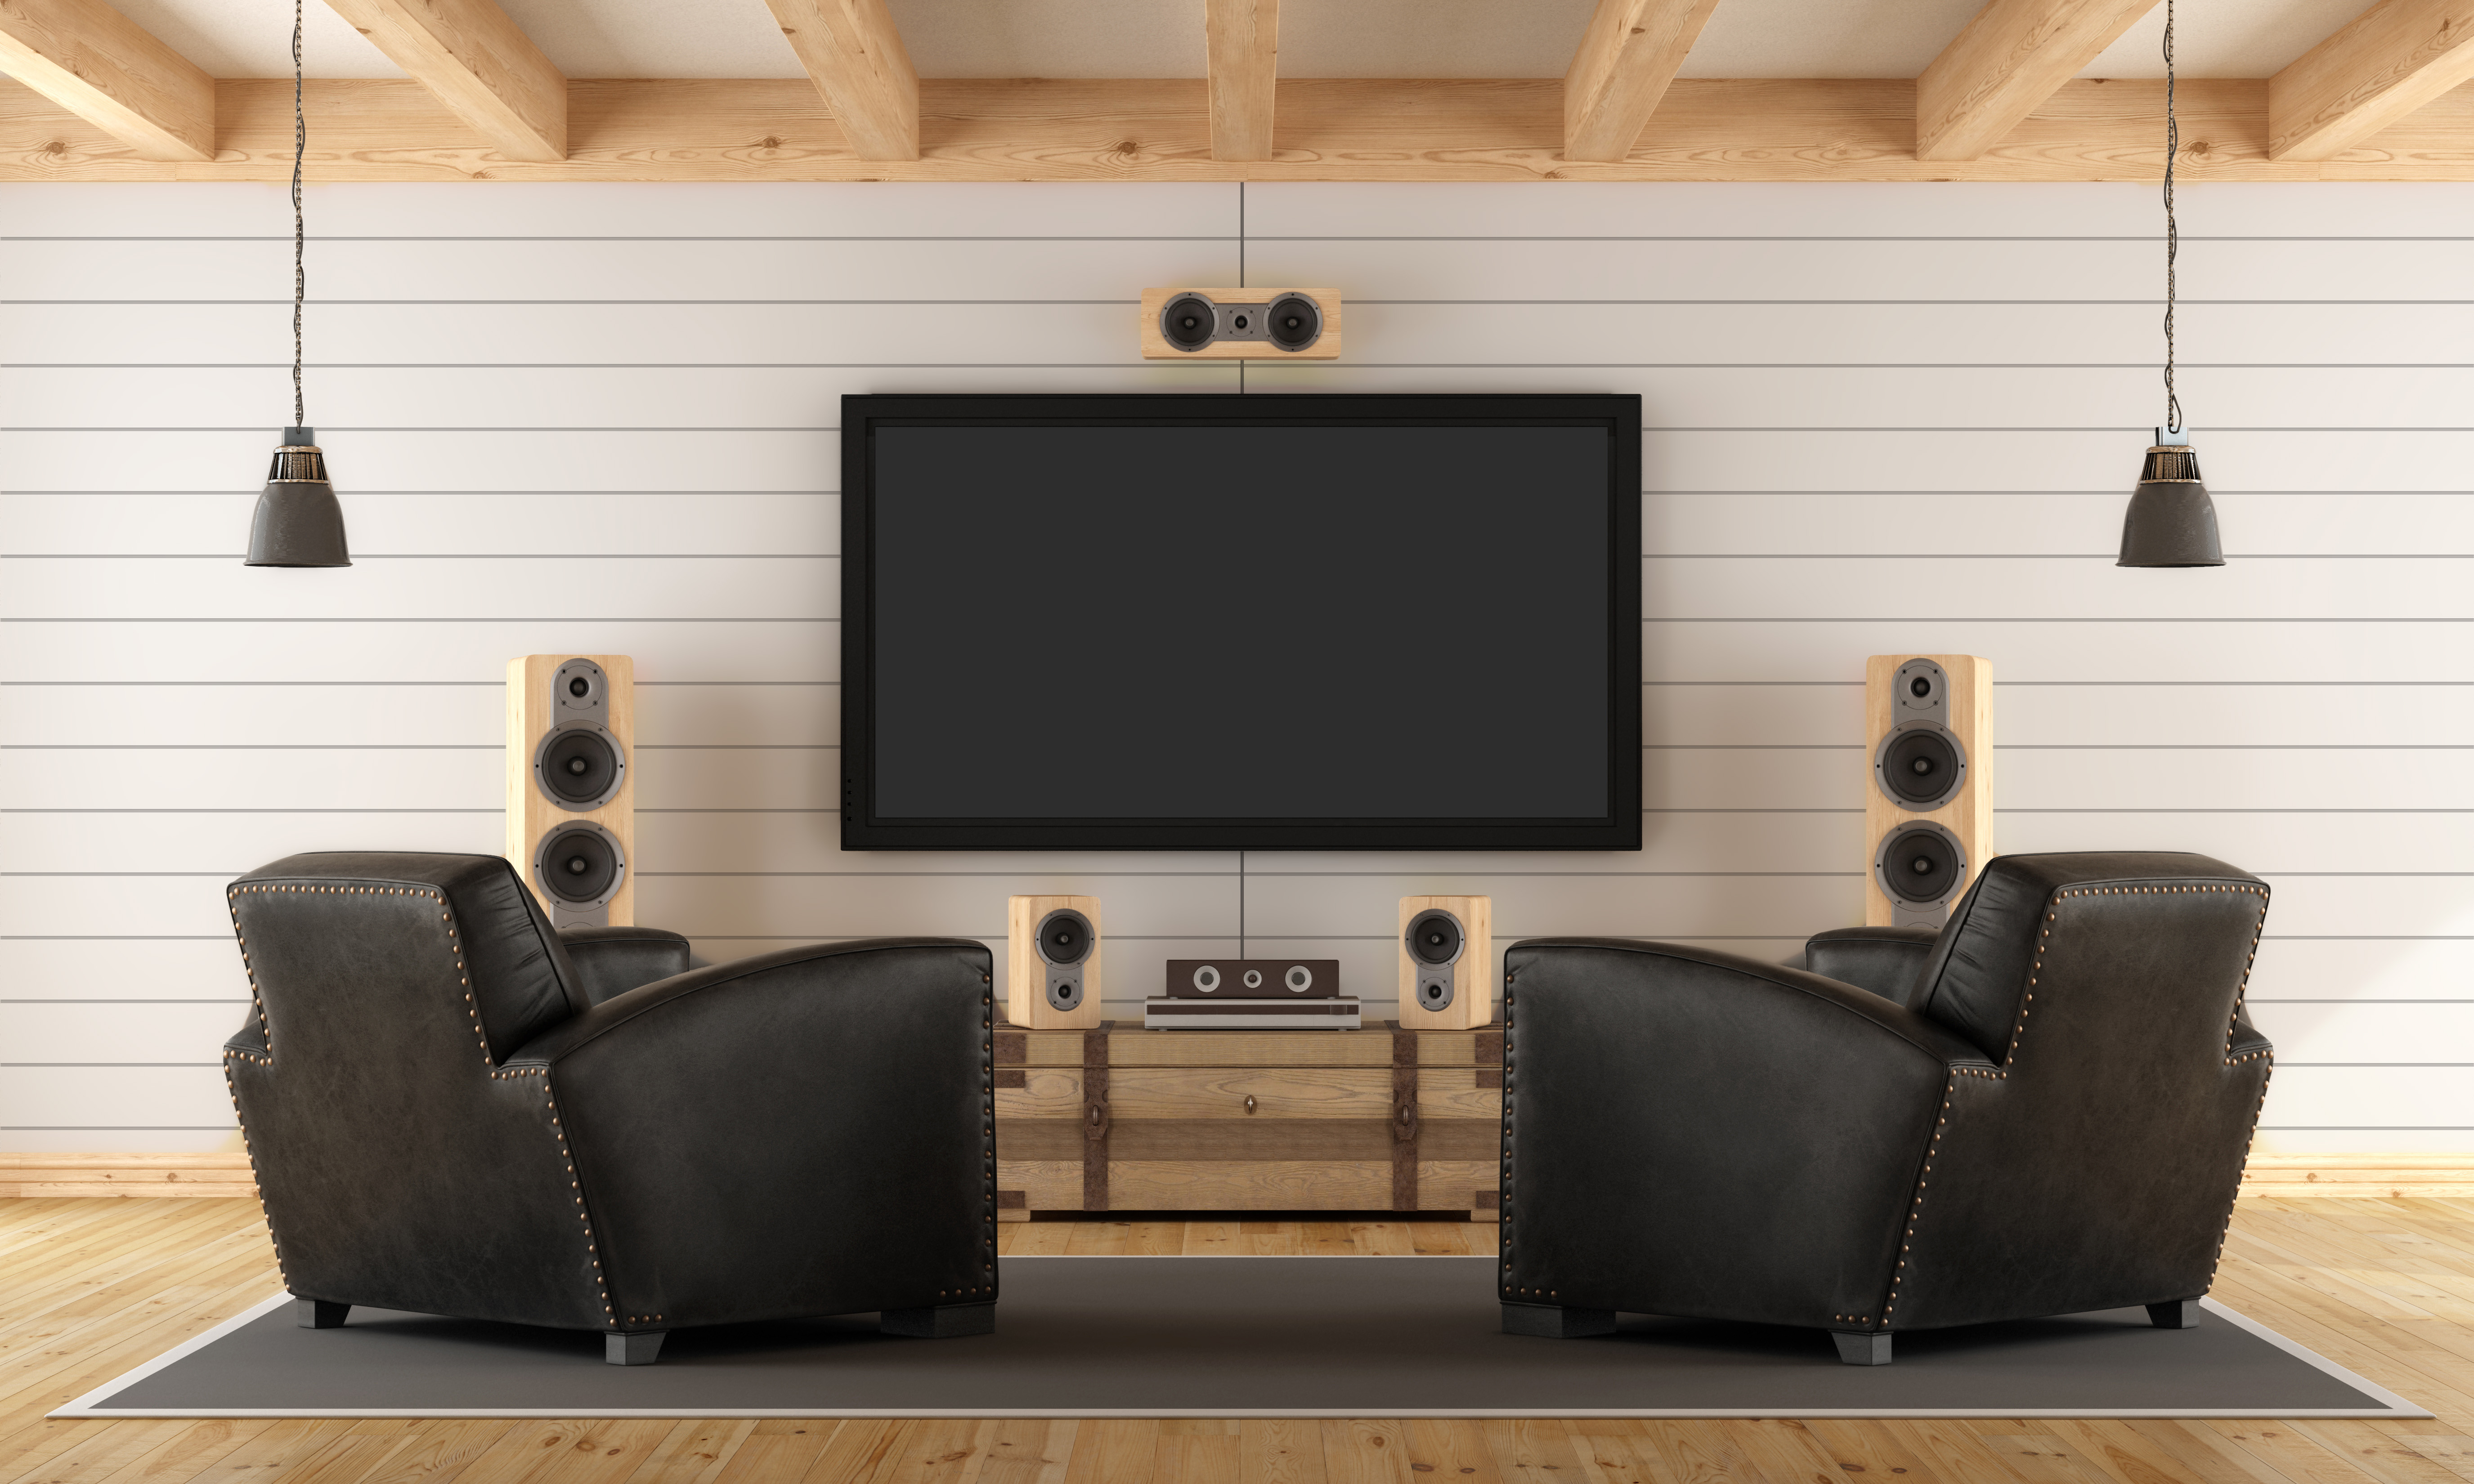 Wall to wall: choosing walls to complement your room